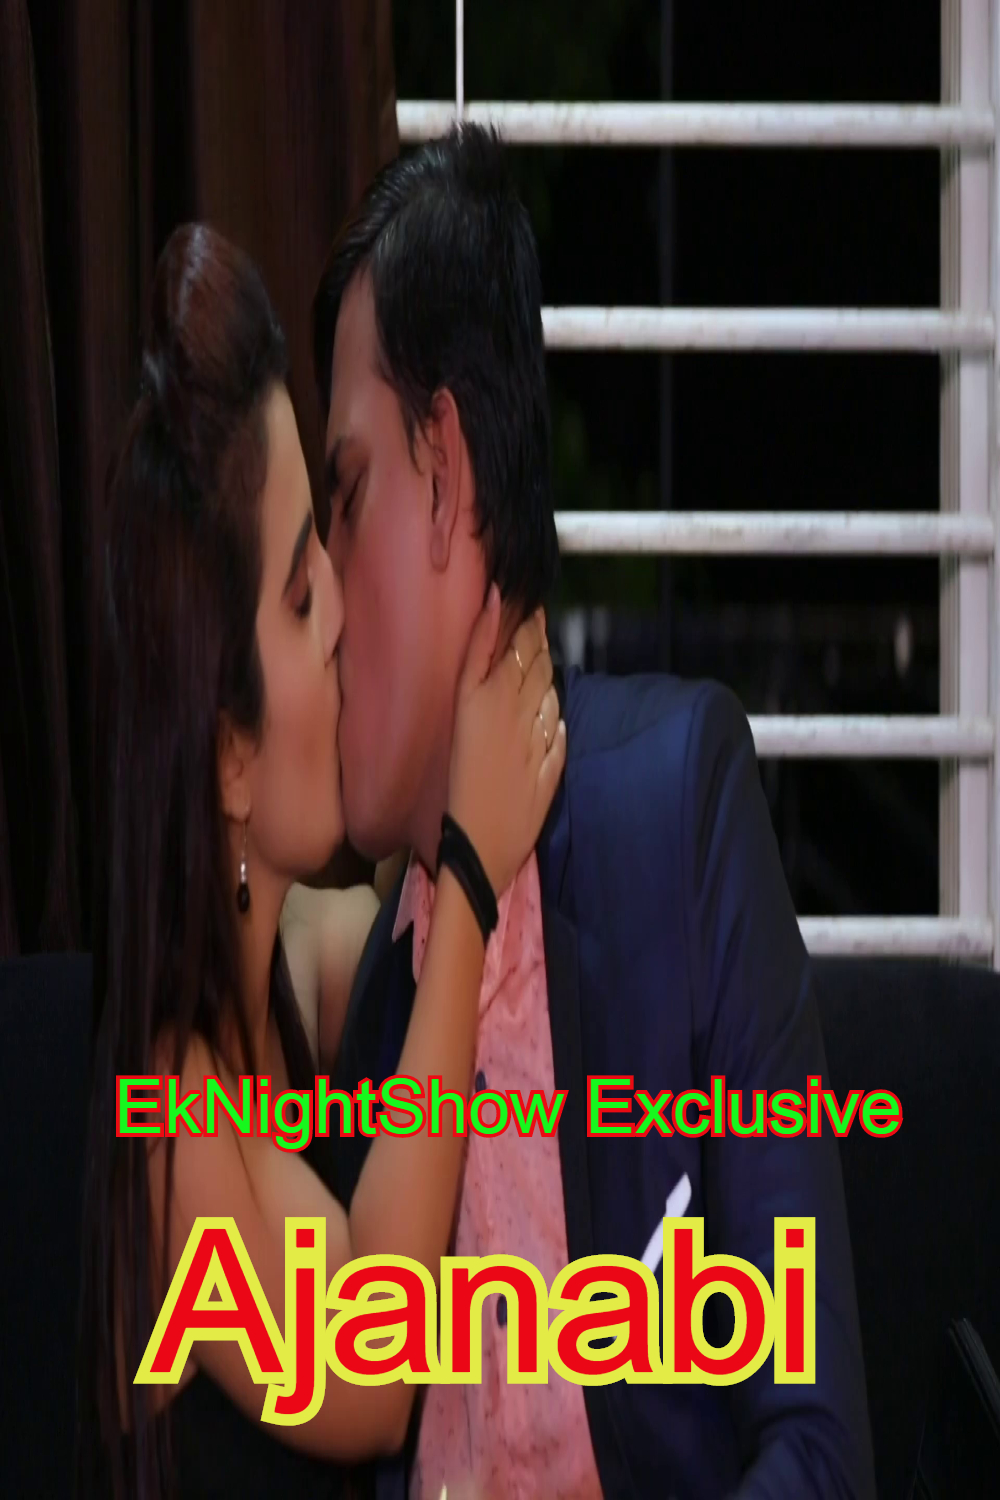 18+ Ajanabi 2021 EknightShow Originals Hindi Short Film 720p HDRip 200MB Download